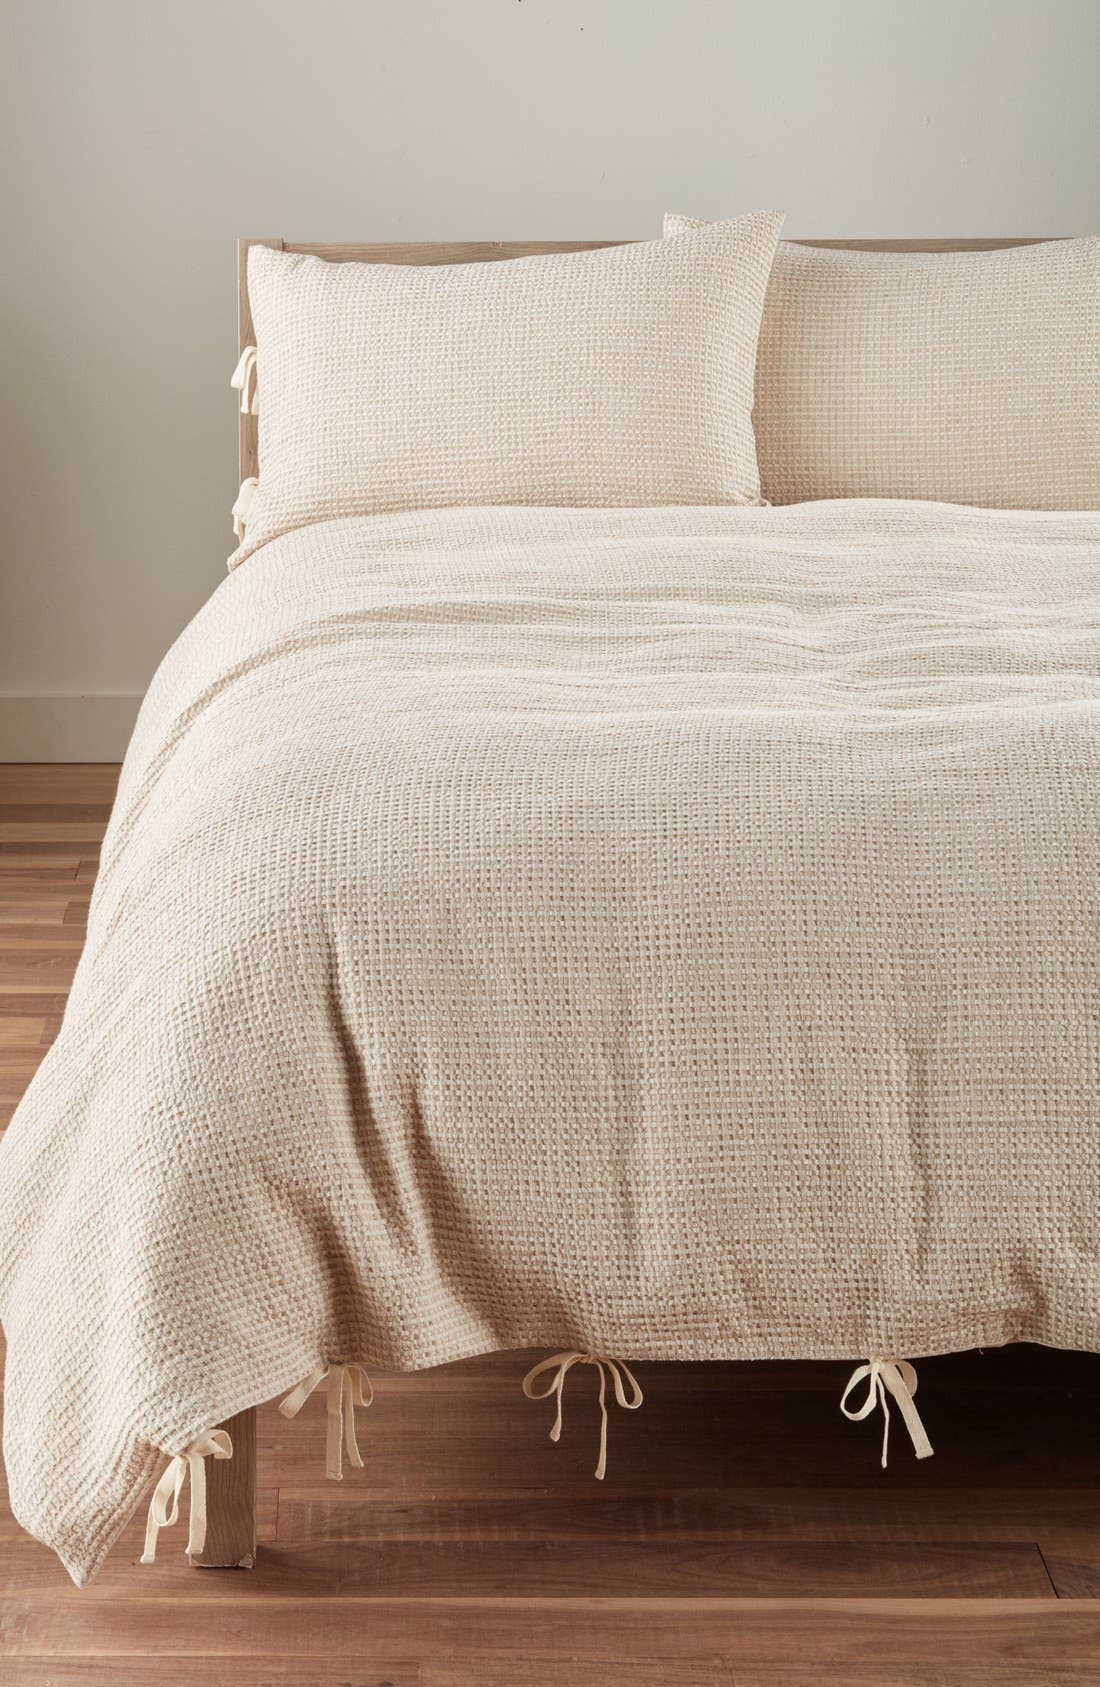 Alternate Image 1 Selected - Nordstrom at Home Waffle Knit Washed Cotton & Linen Duvet Cover